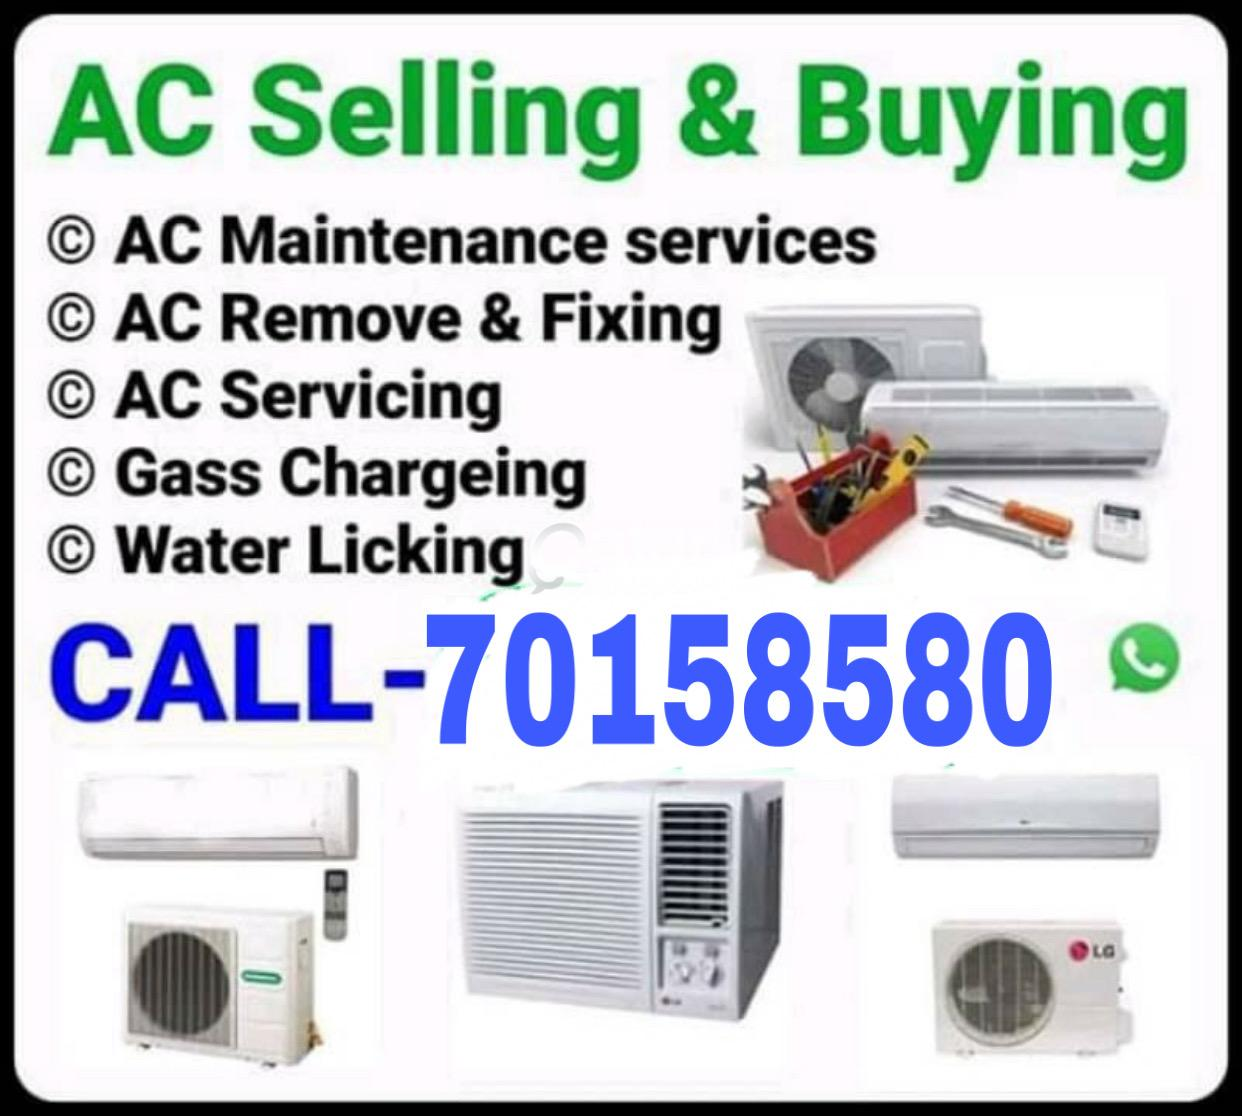 Ac fixing repairing with gas and cleaning call me-